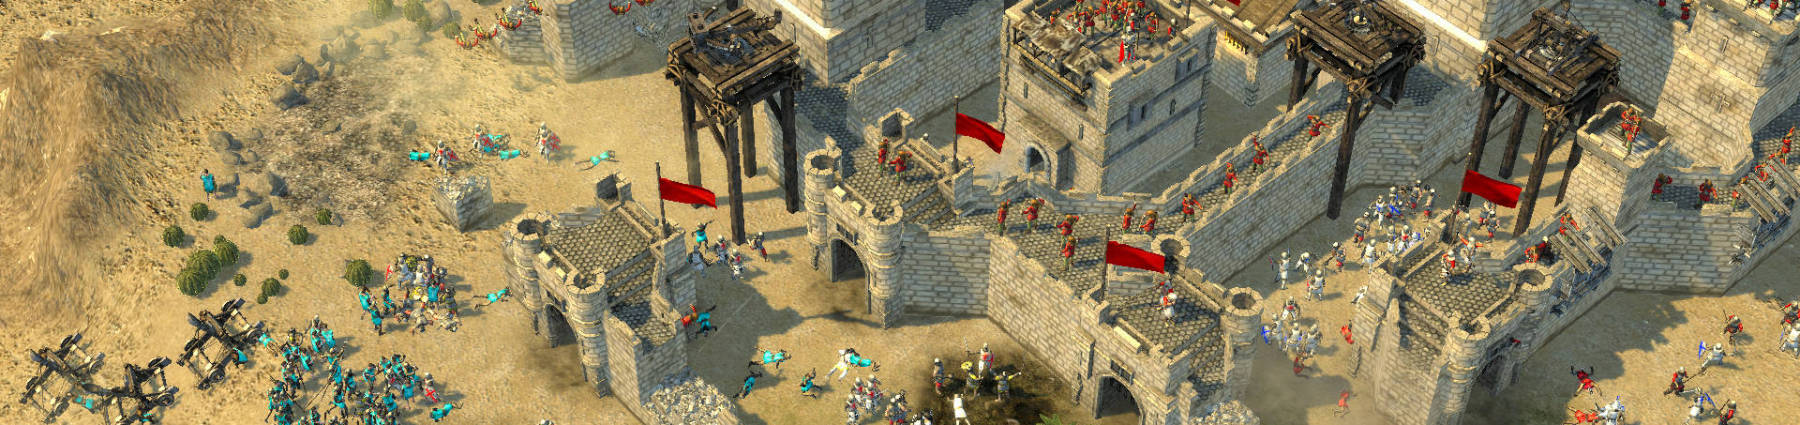 stronghold crusader 2 trainer